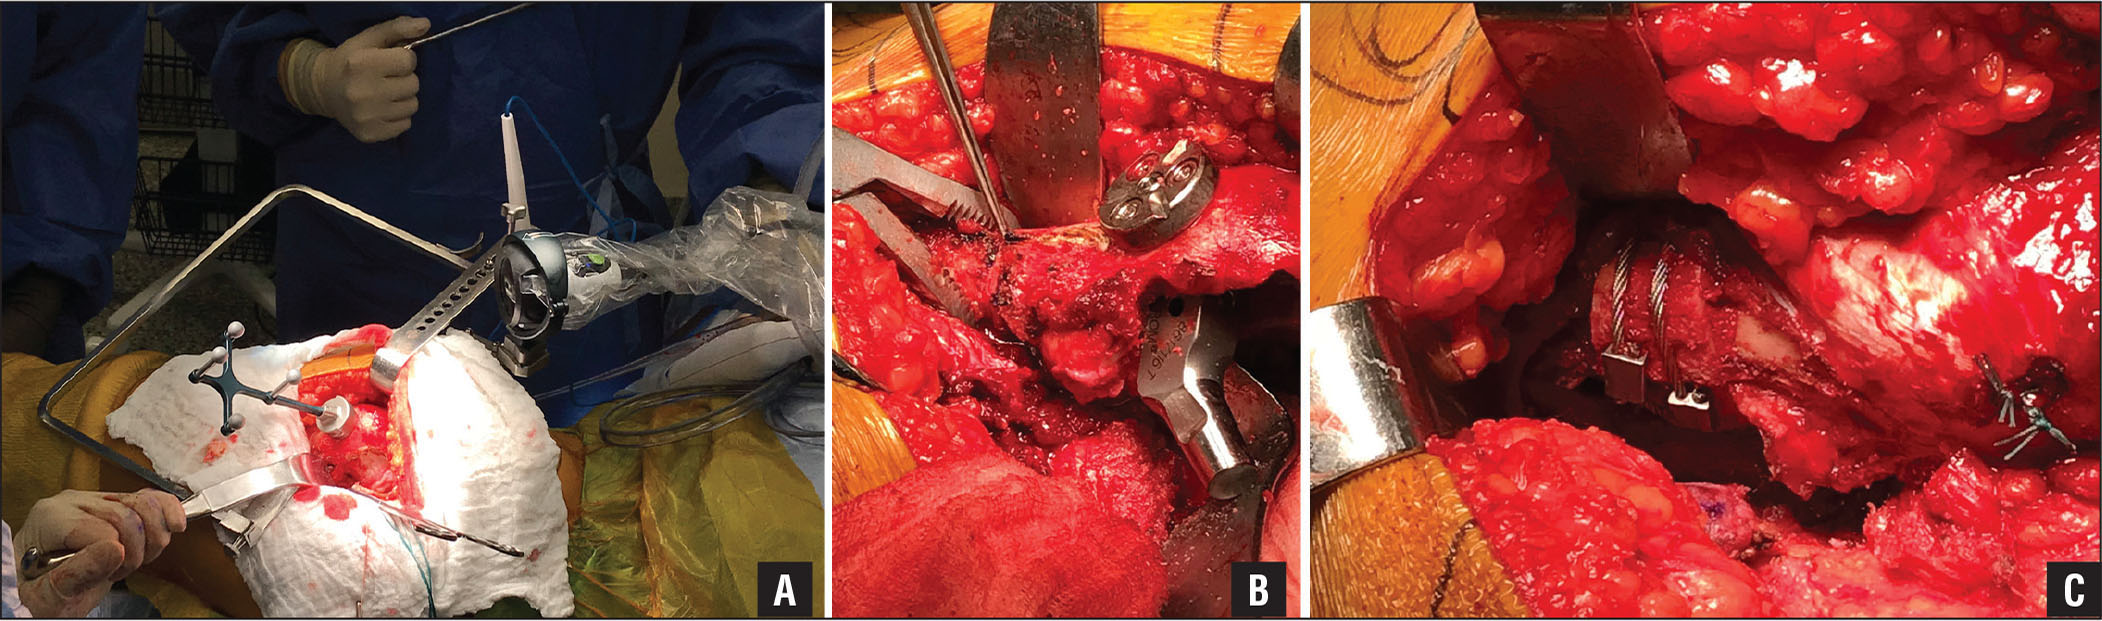 Intraoperative 3-dimensional mini-optical navigation setup showing camera platform attached to the iliac crest and femur platform attached to the greater trochanter (A). Subtrochanteric osteotomy: pre-osteotomy (B) and post-osteotomy (C).